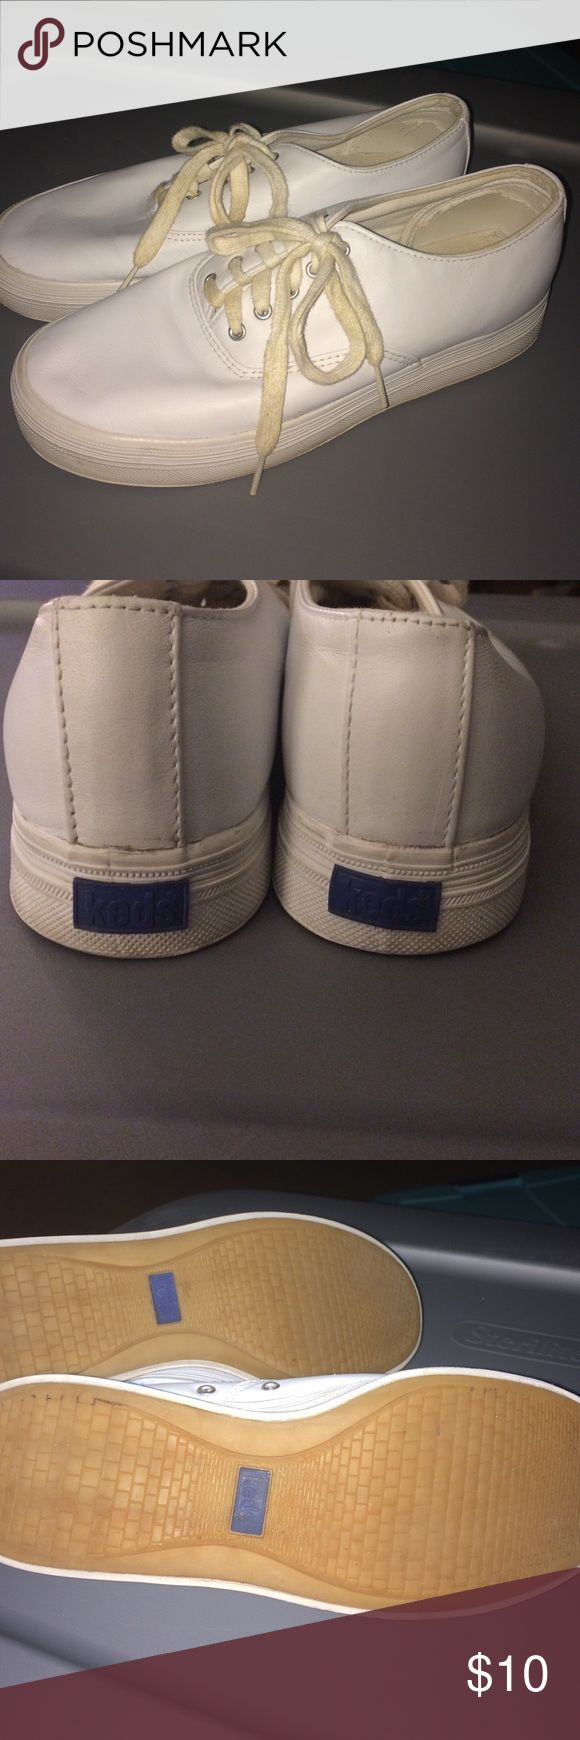 White leather keds Platform soles. White leather. Washable. Good used condition Keds Shoes Sneakers